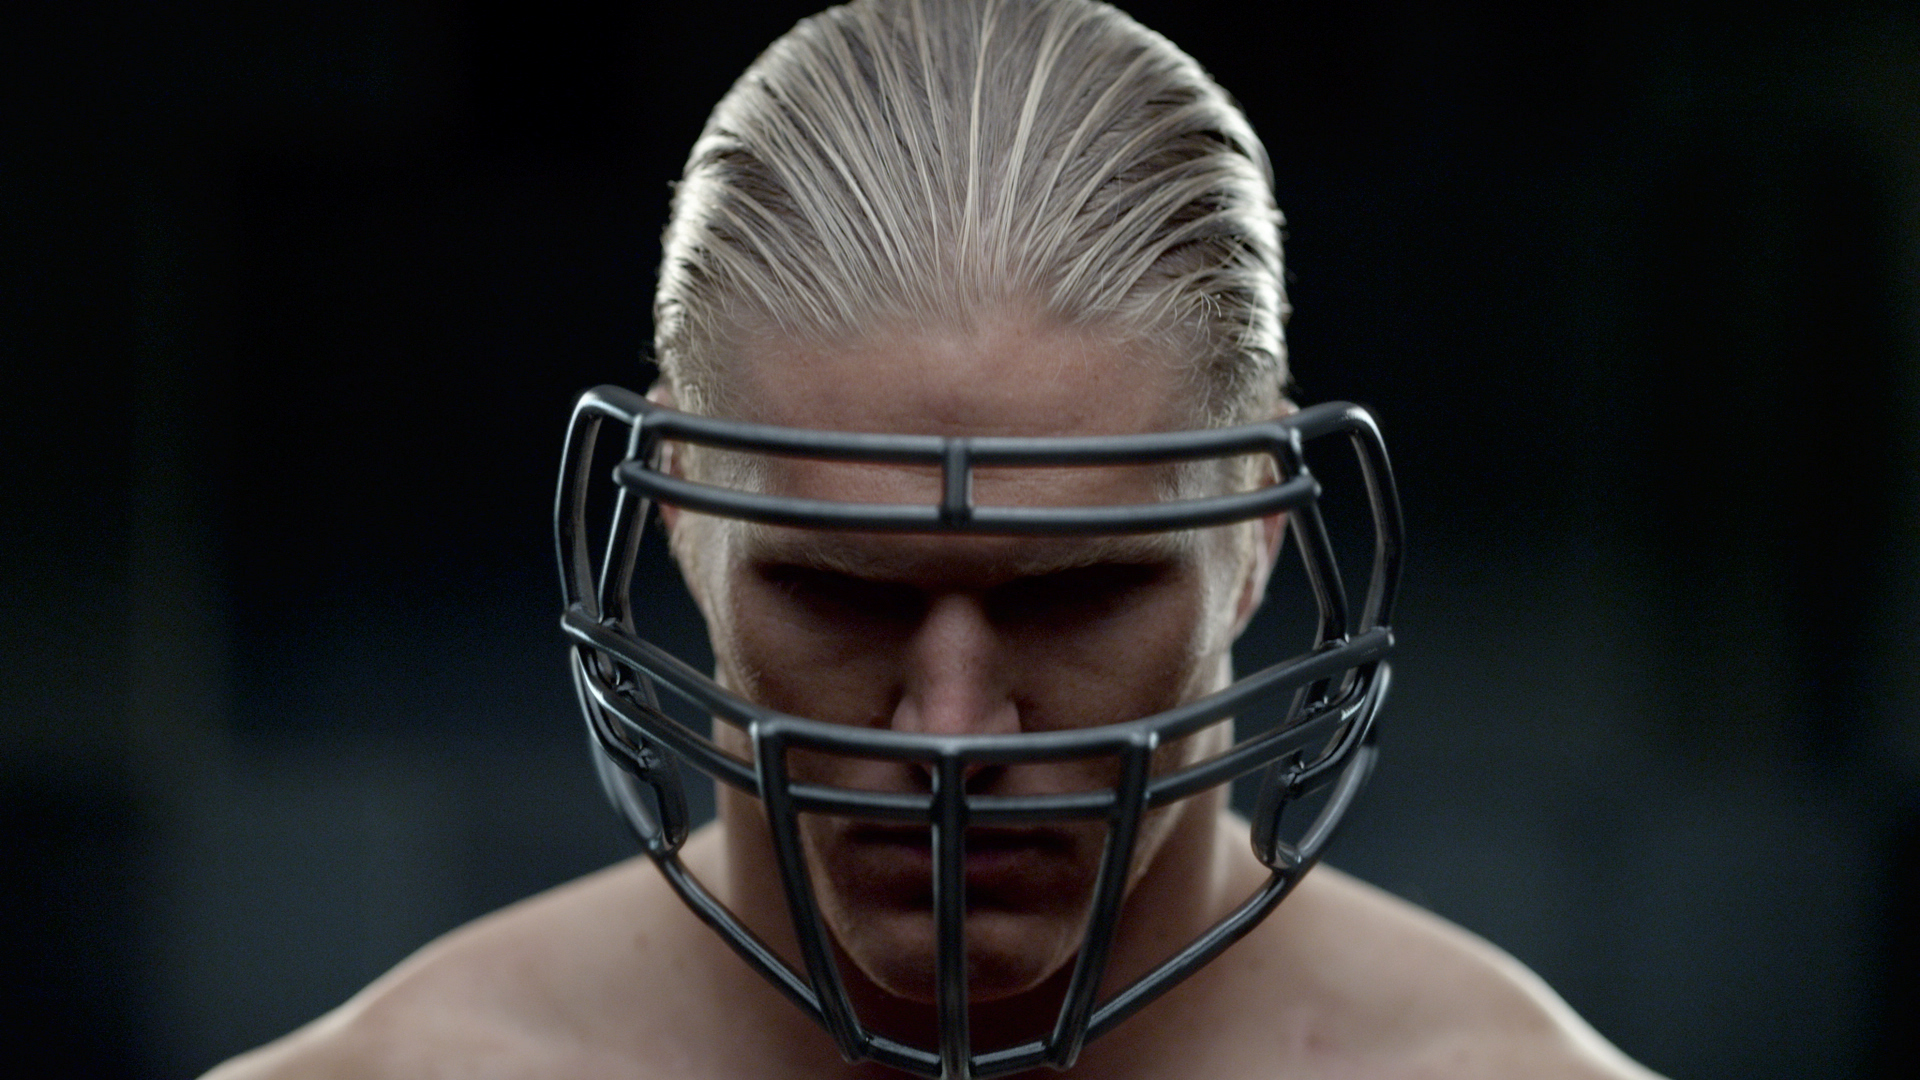 Gillette Enlists Top NFL Players And Sport Sciences John Brenkus To Highlight The Importance Of Precision In Football Shaving